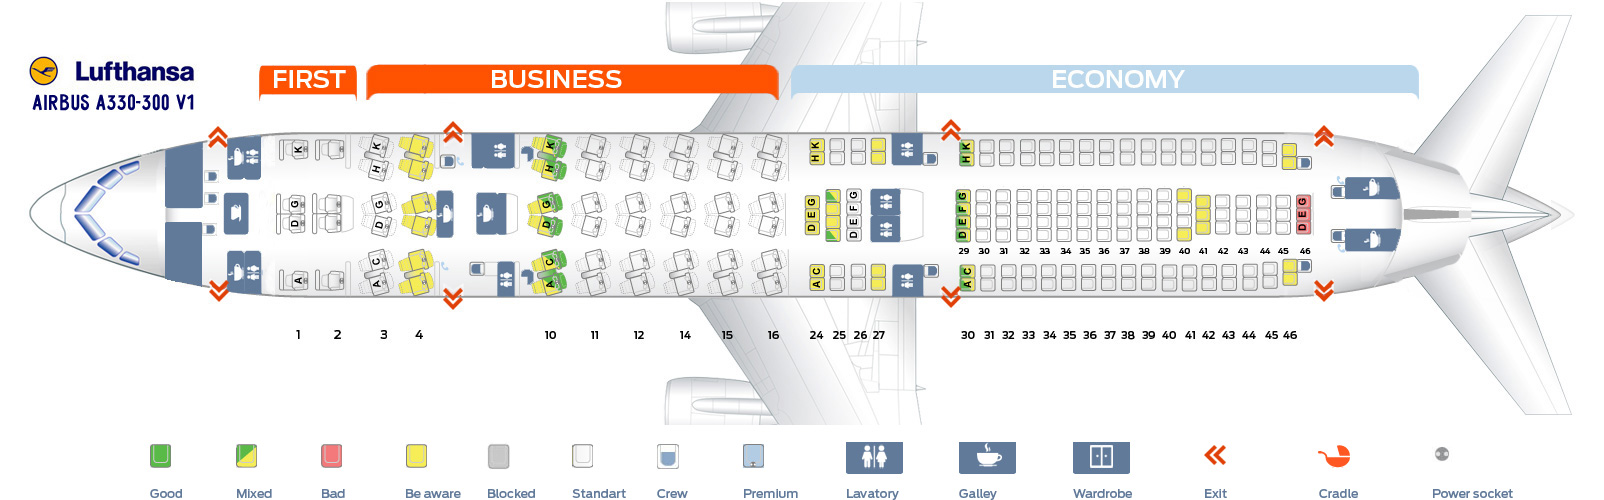 A330 300 Seat Map Seat map Airbus A330 300 Lufthansa. Best seats in plane